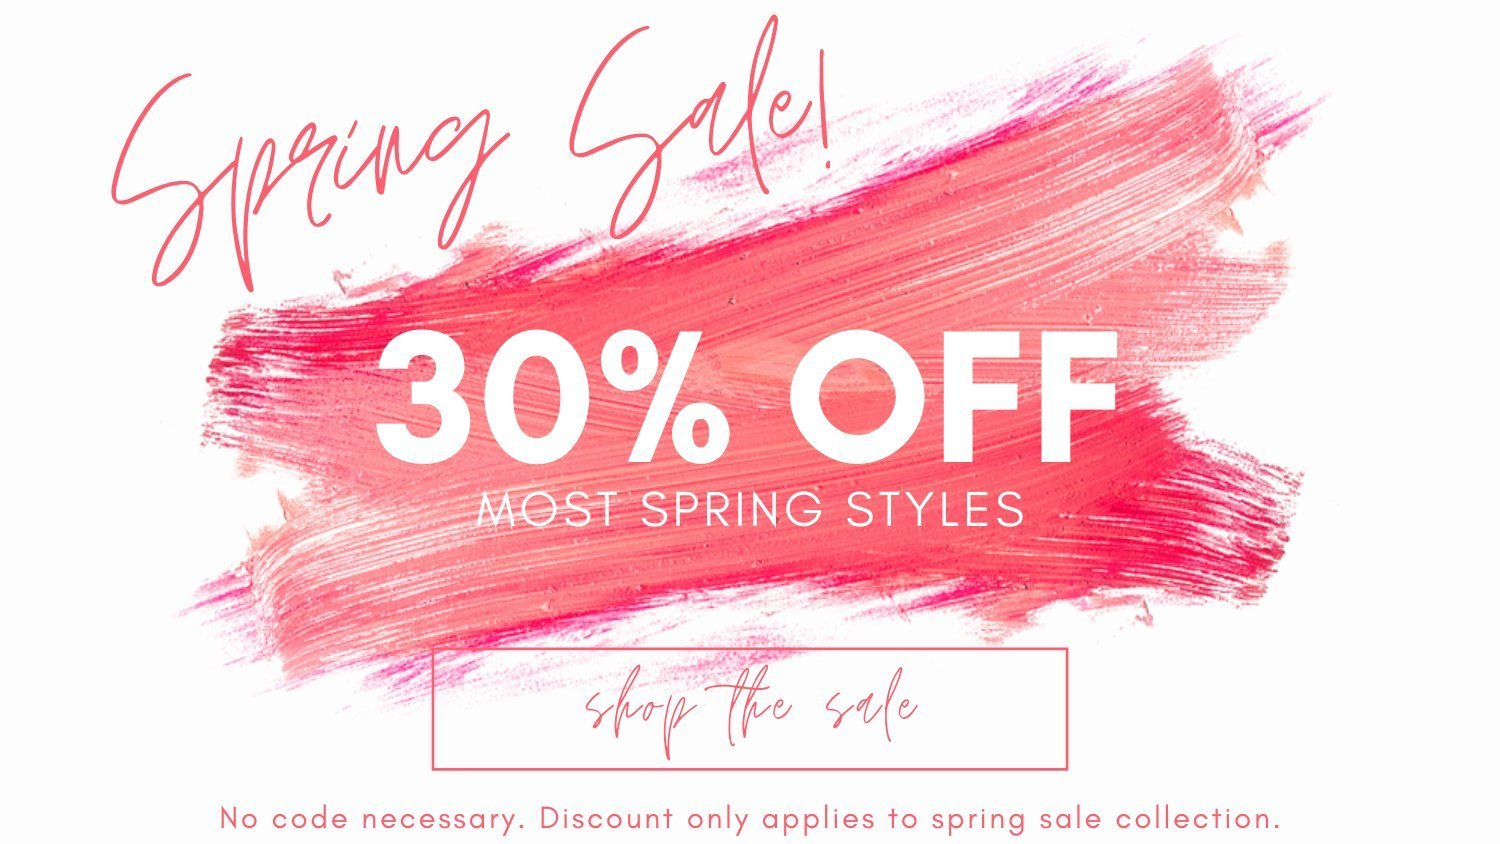 spring styles are now 30 percent off. perfect looks that transition into summer.